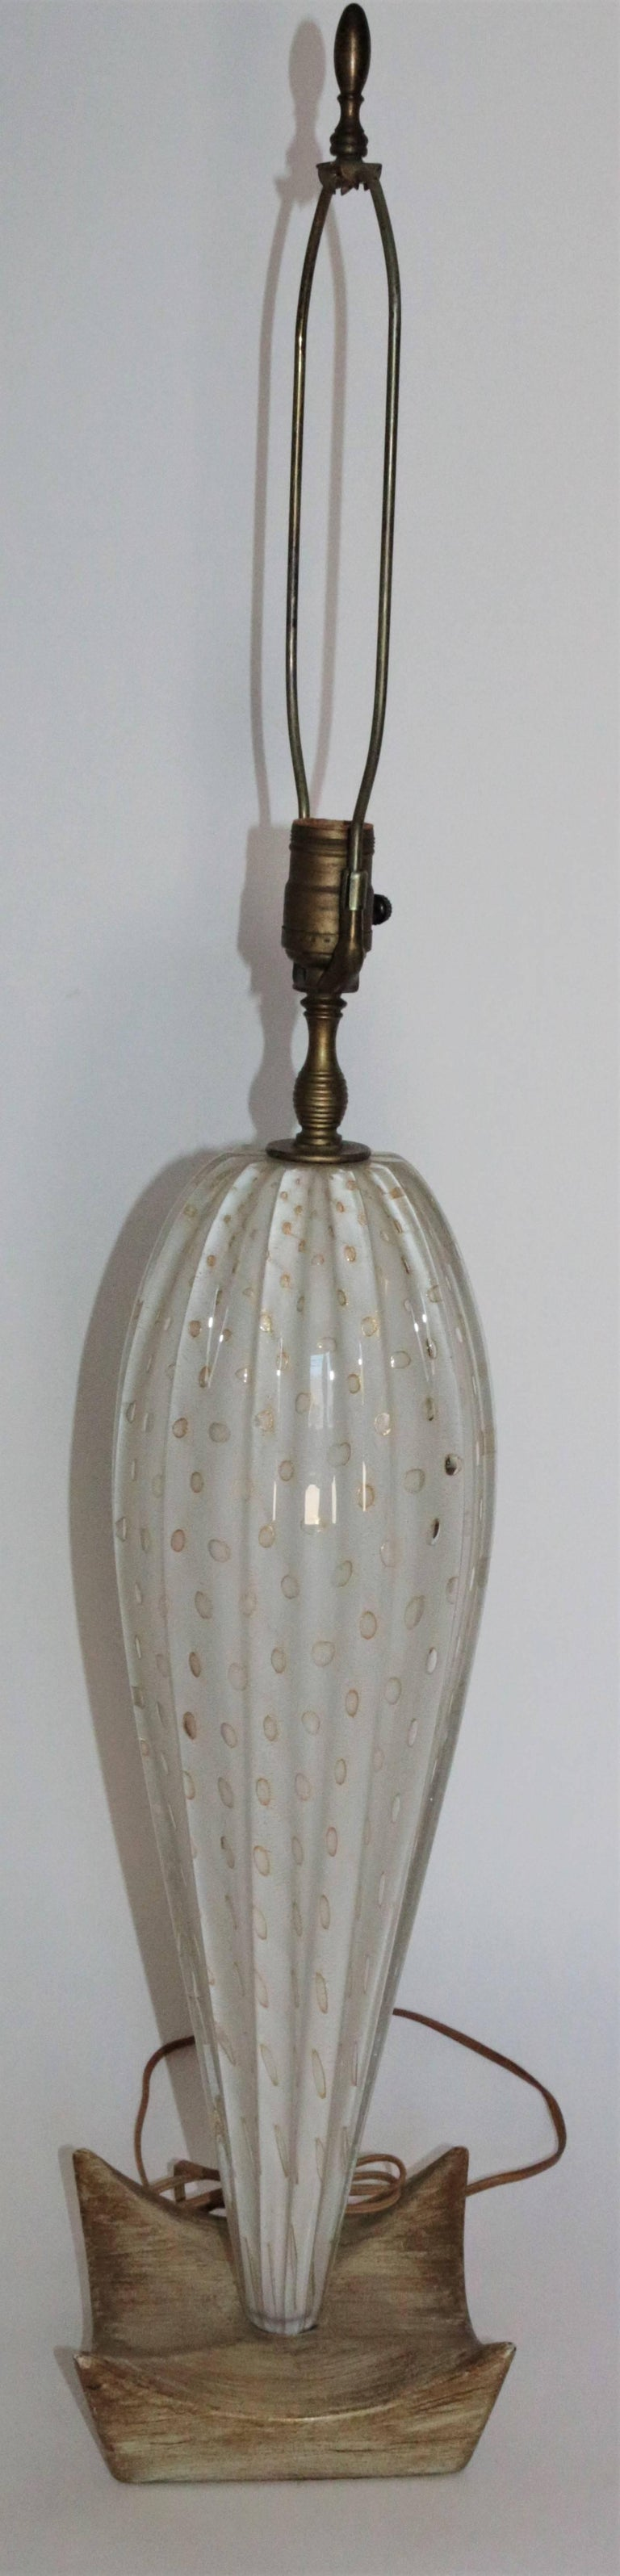 Pair of White Mid-Century Murano Lamps with a Unique Wooden Base and Gold Accent 5